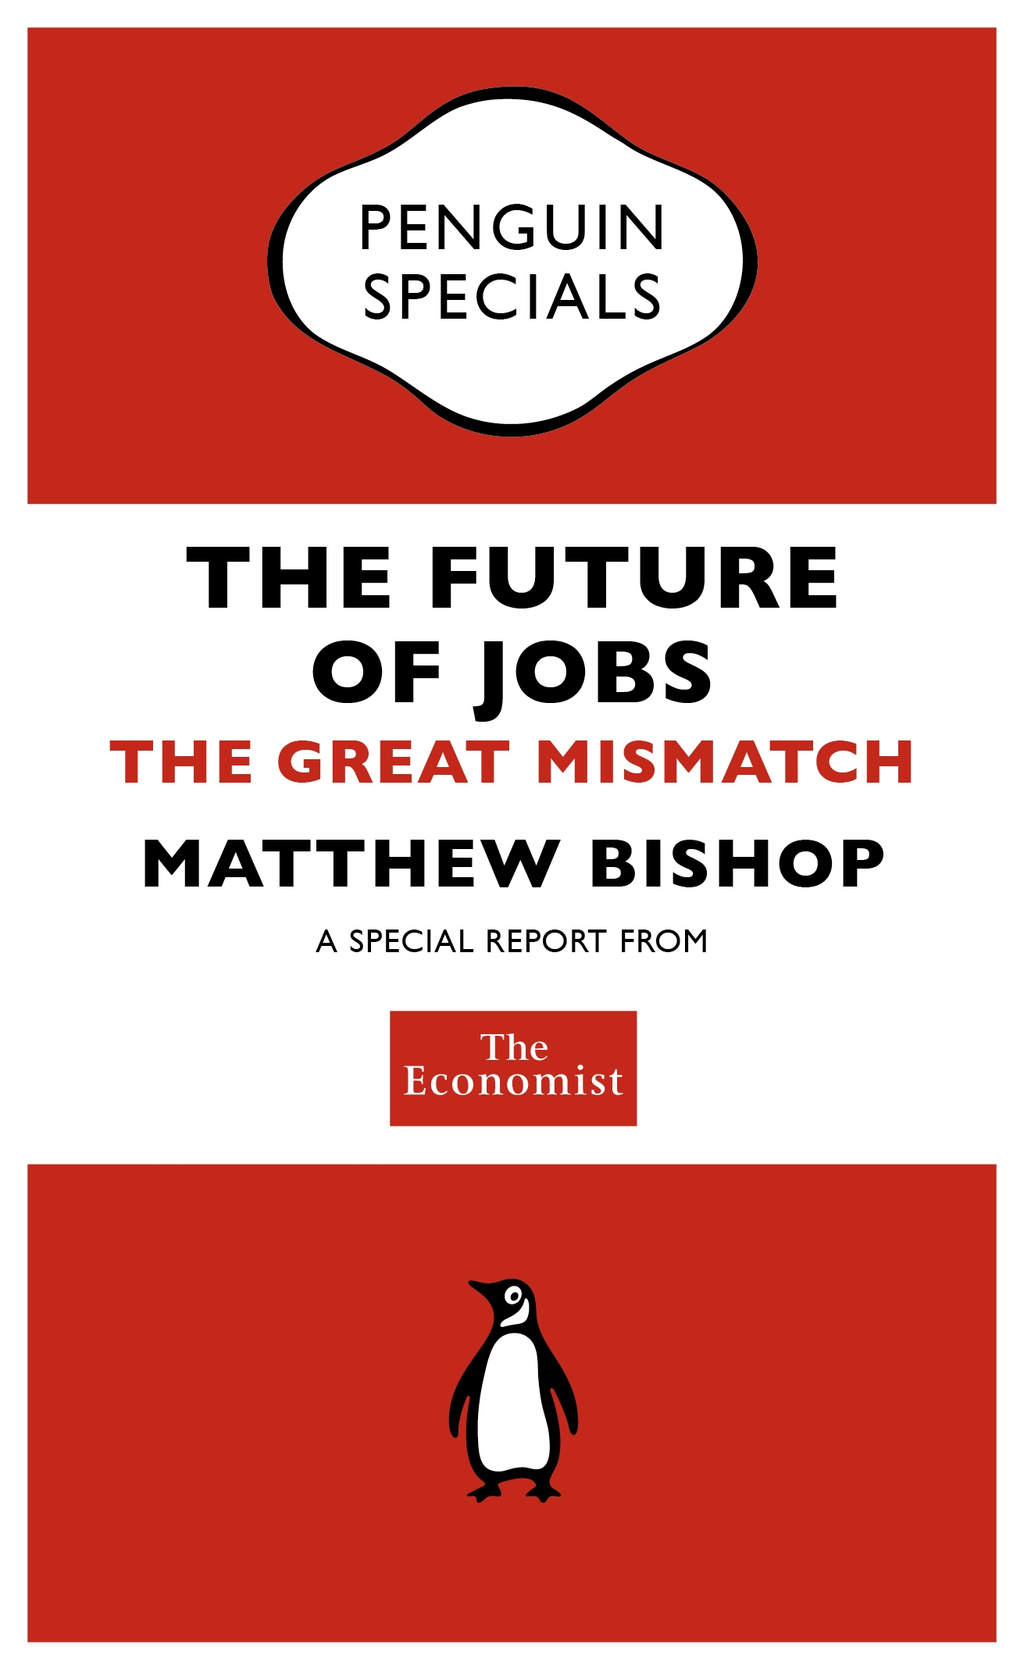 The Economist: The Future of Jobs (Penguin Specials) The Great Mismatch